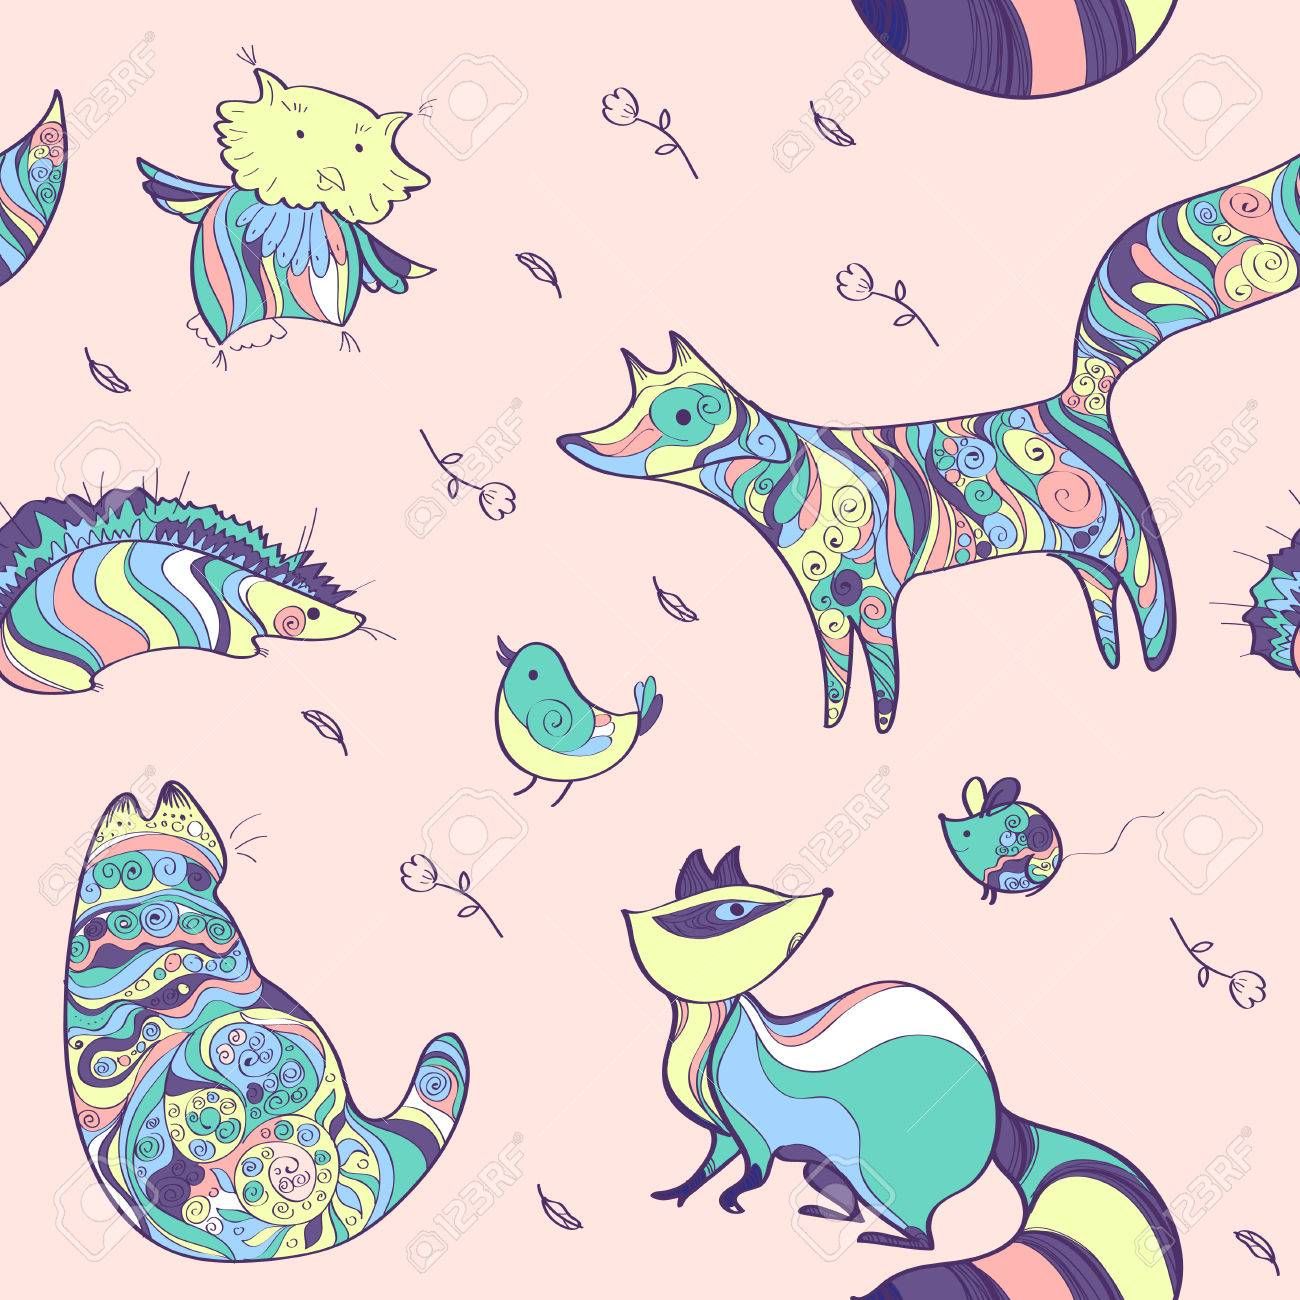 Seamless Vector Animal Pattern Doodling Animal Set On Light Royalty Free Cliparts Vectors And Stock Illustration Image 45983138